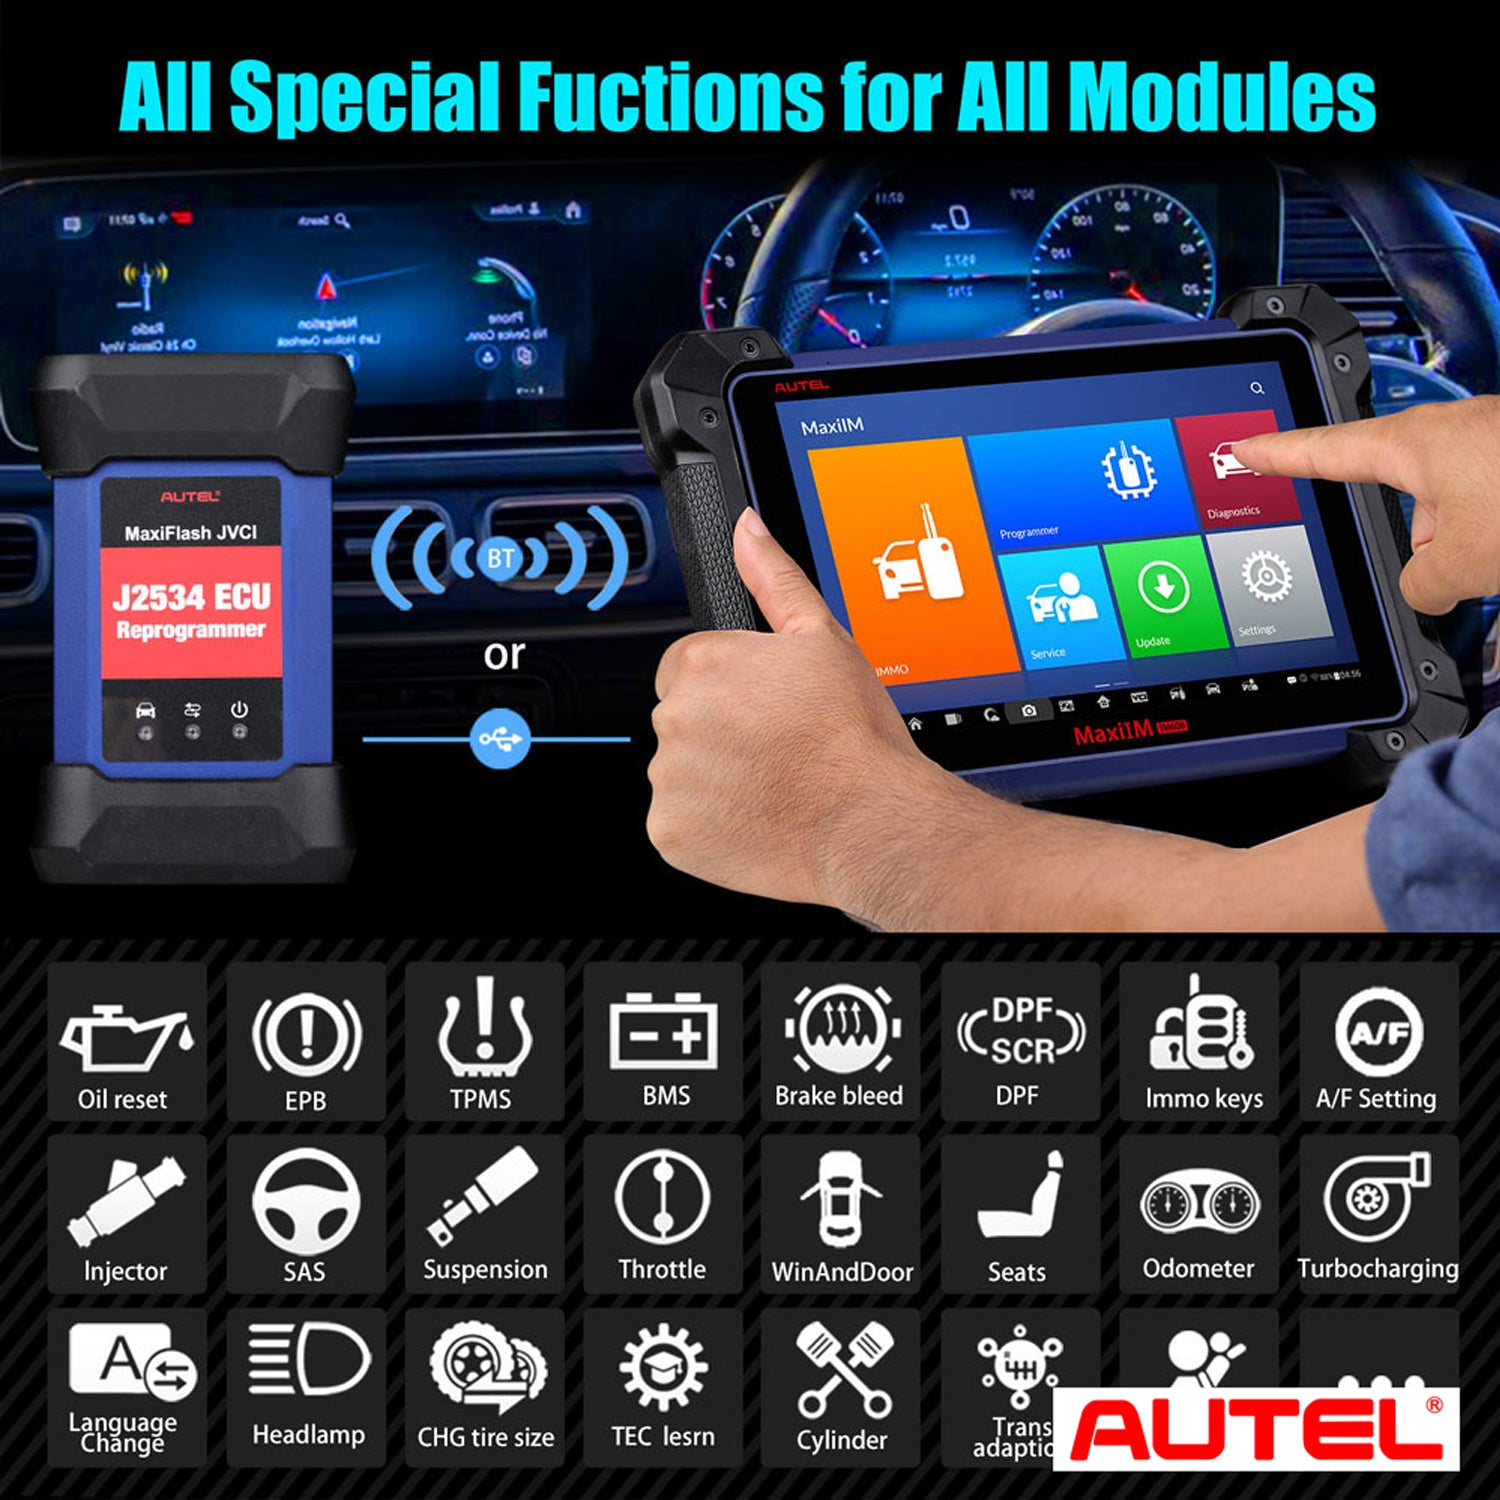 Autel MaxiIM IM608 Key Programming Tool Supports All Special Functions for All Modules